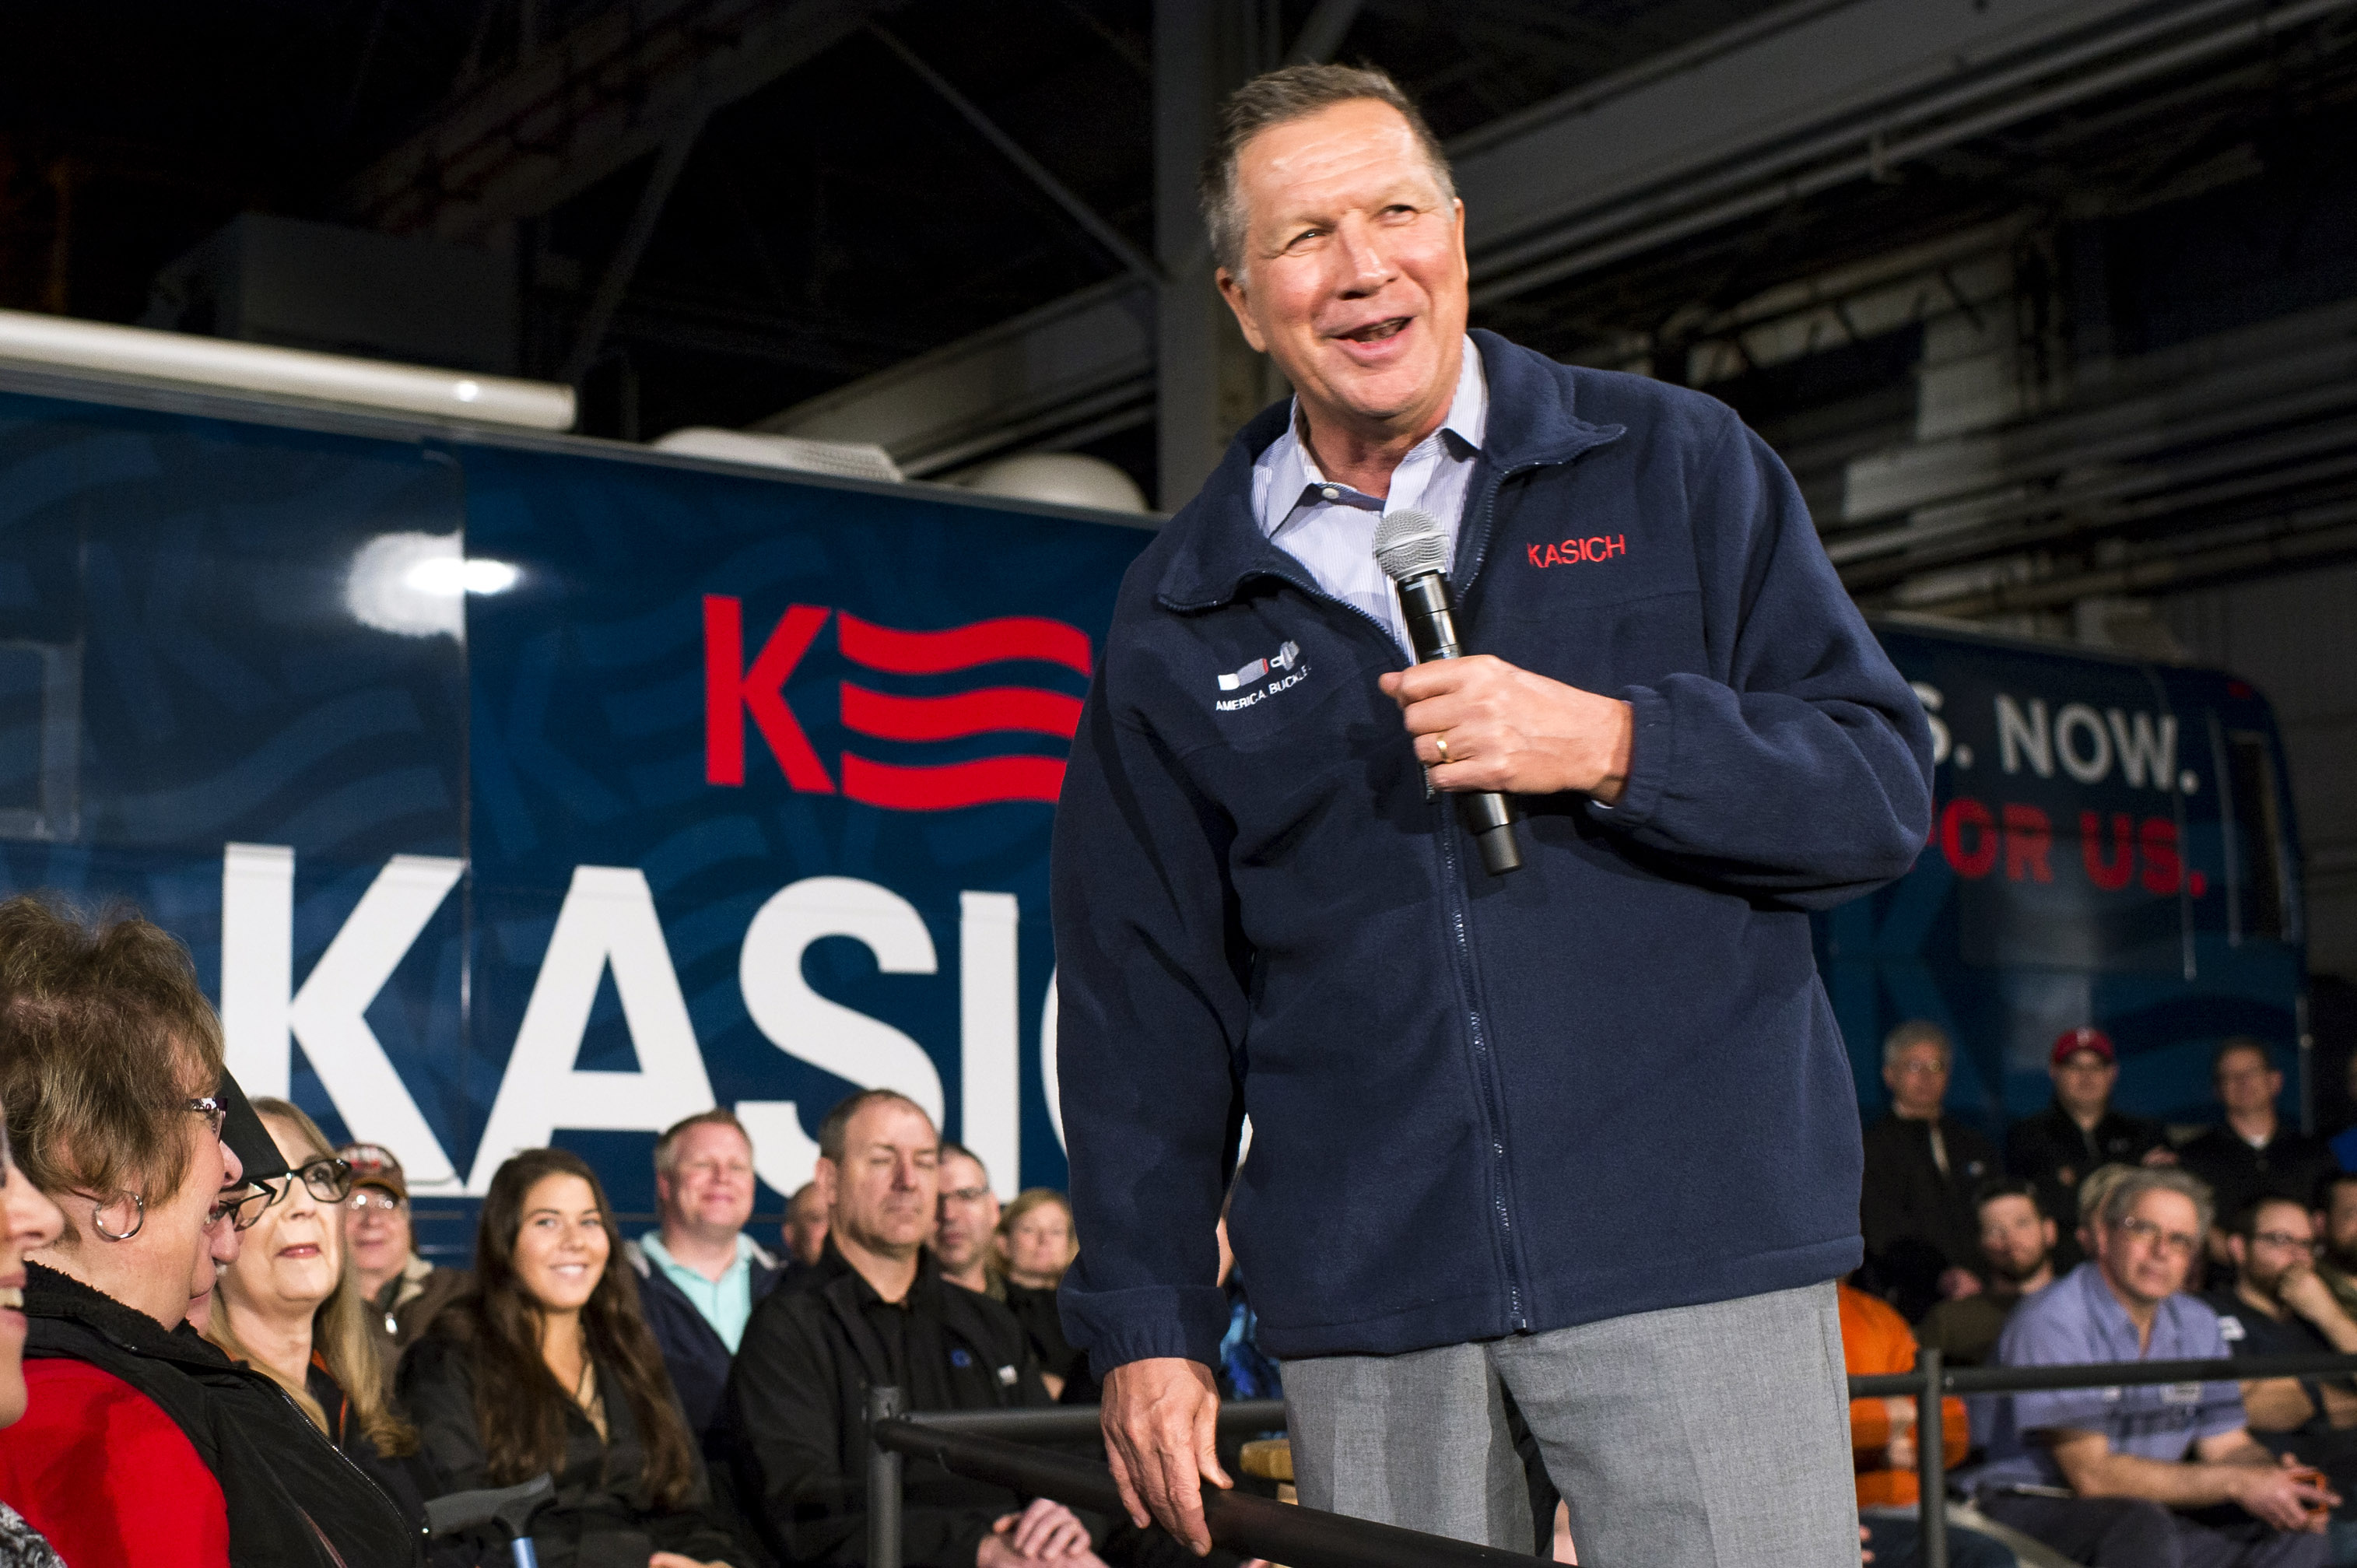 YOUNGSTOWN, OH - MARCH 14:  Republican presidential candidate Ohio Gov. John Kasich speaks to supporters at a town hall meeting at Brilex Industries, Inc. on March 14, 2016 in Youngstown, Ohio. The campaign stop comes less than 24 hours before polls open in Ohio's winner-take-all primary election.  (Photo by Angelo Merendino/Getty Images)